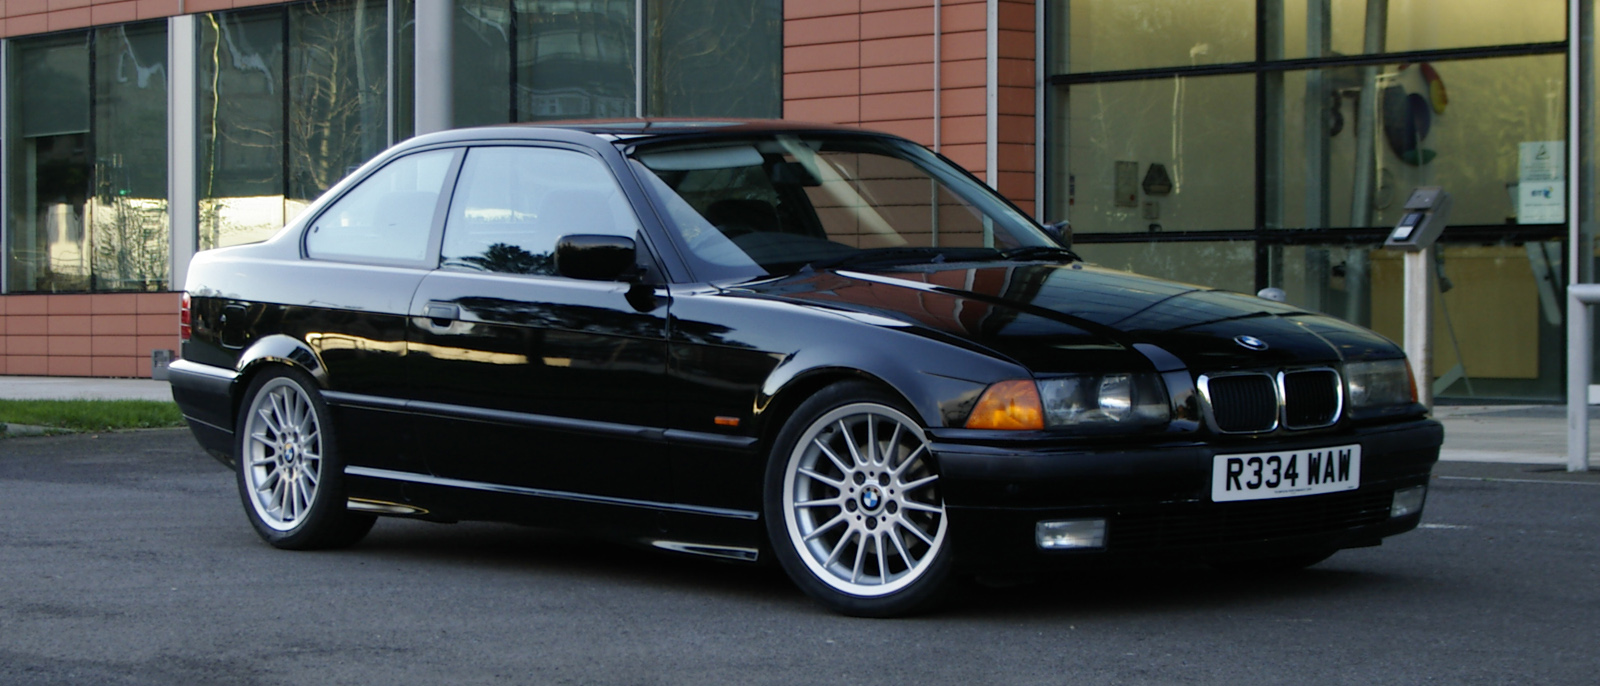 Upgrades and Tuning: BMW 328is E36